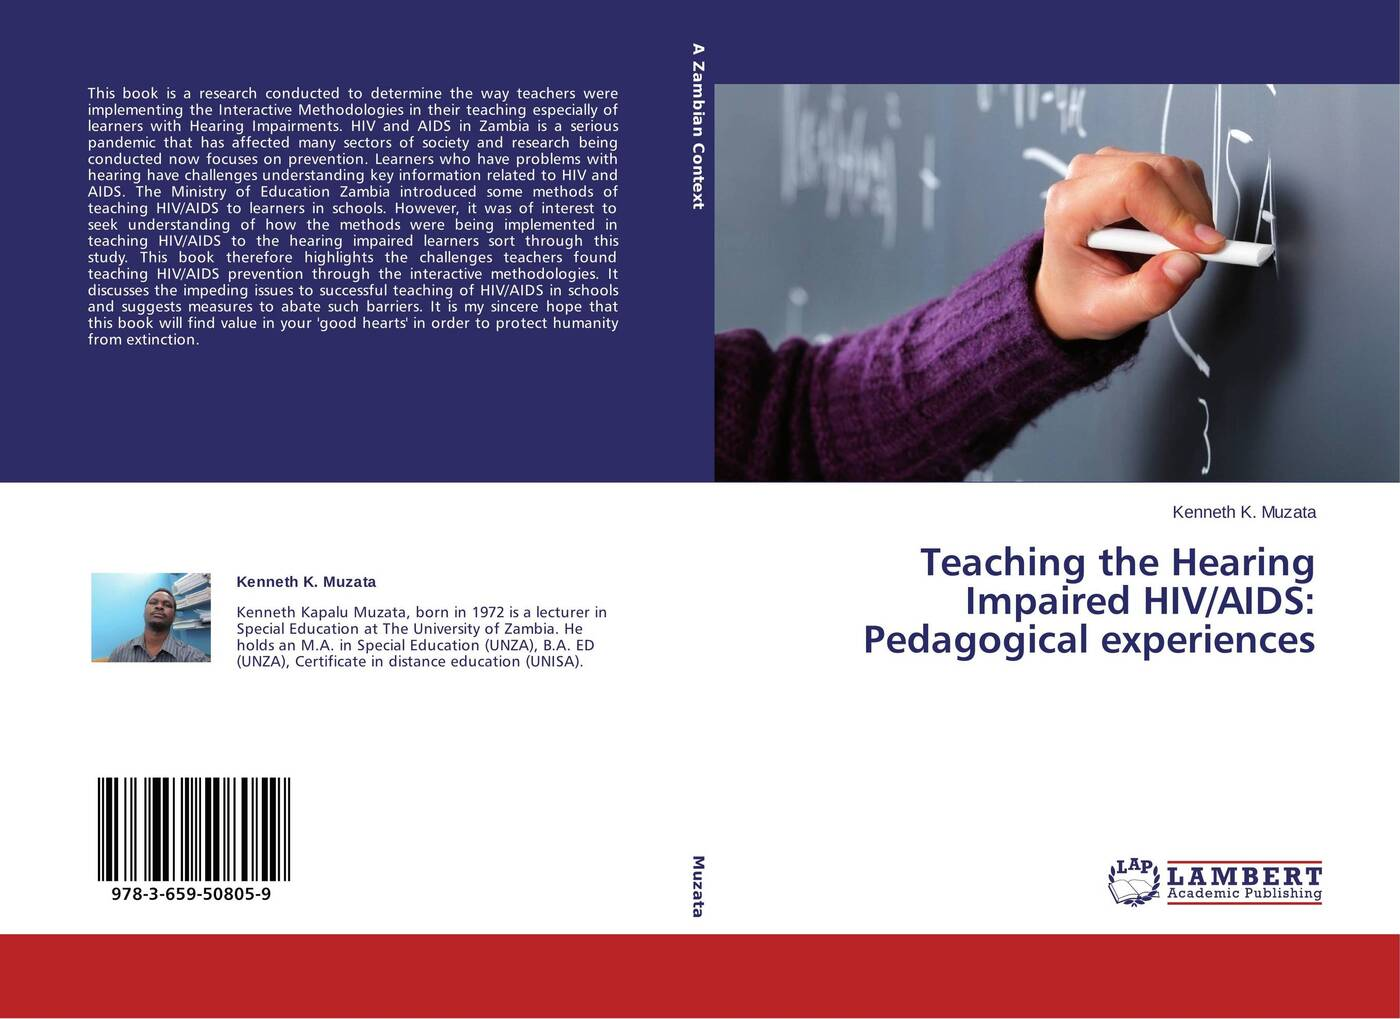 Kenneth K. Muzata Teaching the Hearing Impaired HIV/AIDS: Pedagogical experiences недорго, оригинальная цена